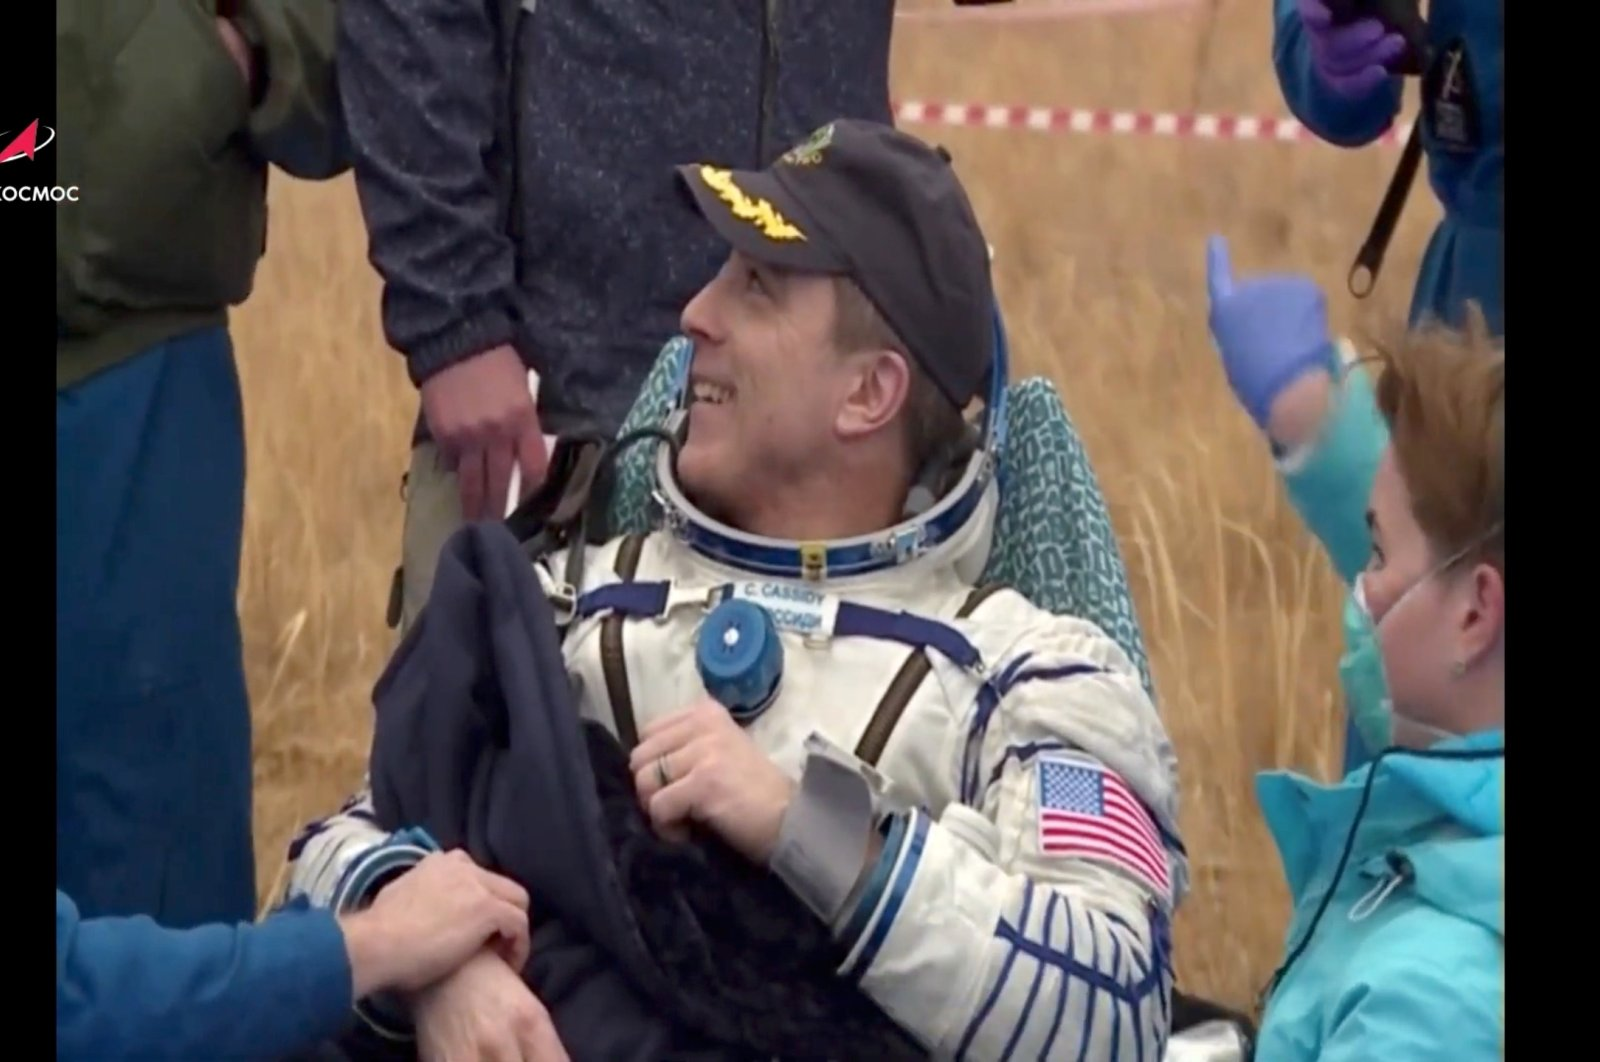 International Space Station (ISS) crew member Christopher Cassidy of NASA reacts after the landing of the Soyuz MS-16 capsule in a remote area outside Zhezkazgan, Kazakhstan October 22, 2020, in this still image taken from video. (Russian space agency Roscosmos via Reuters)